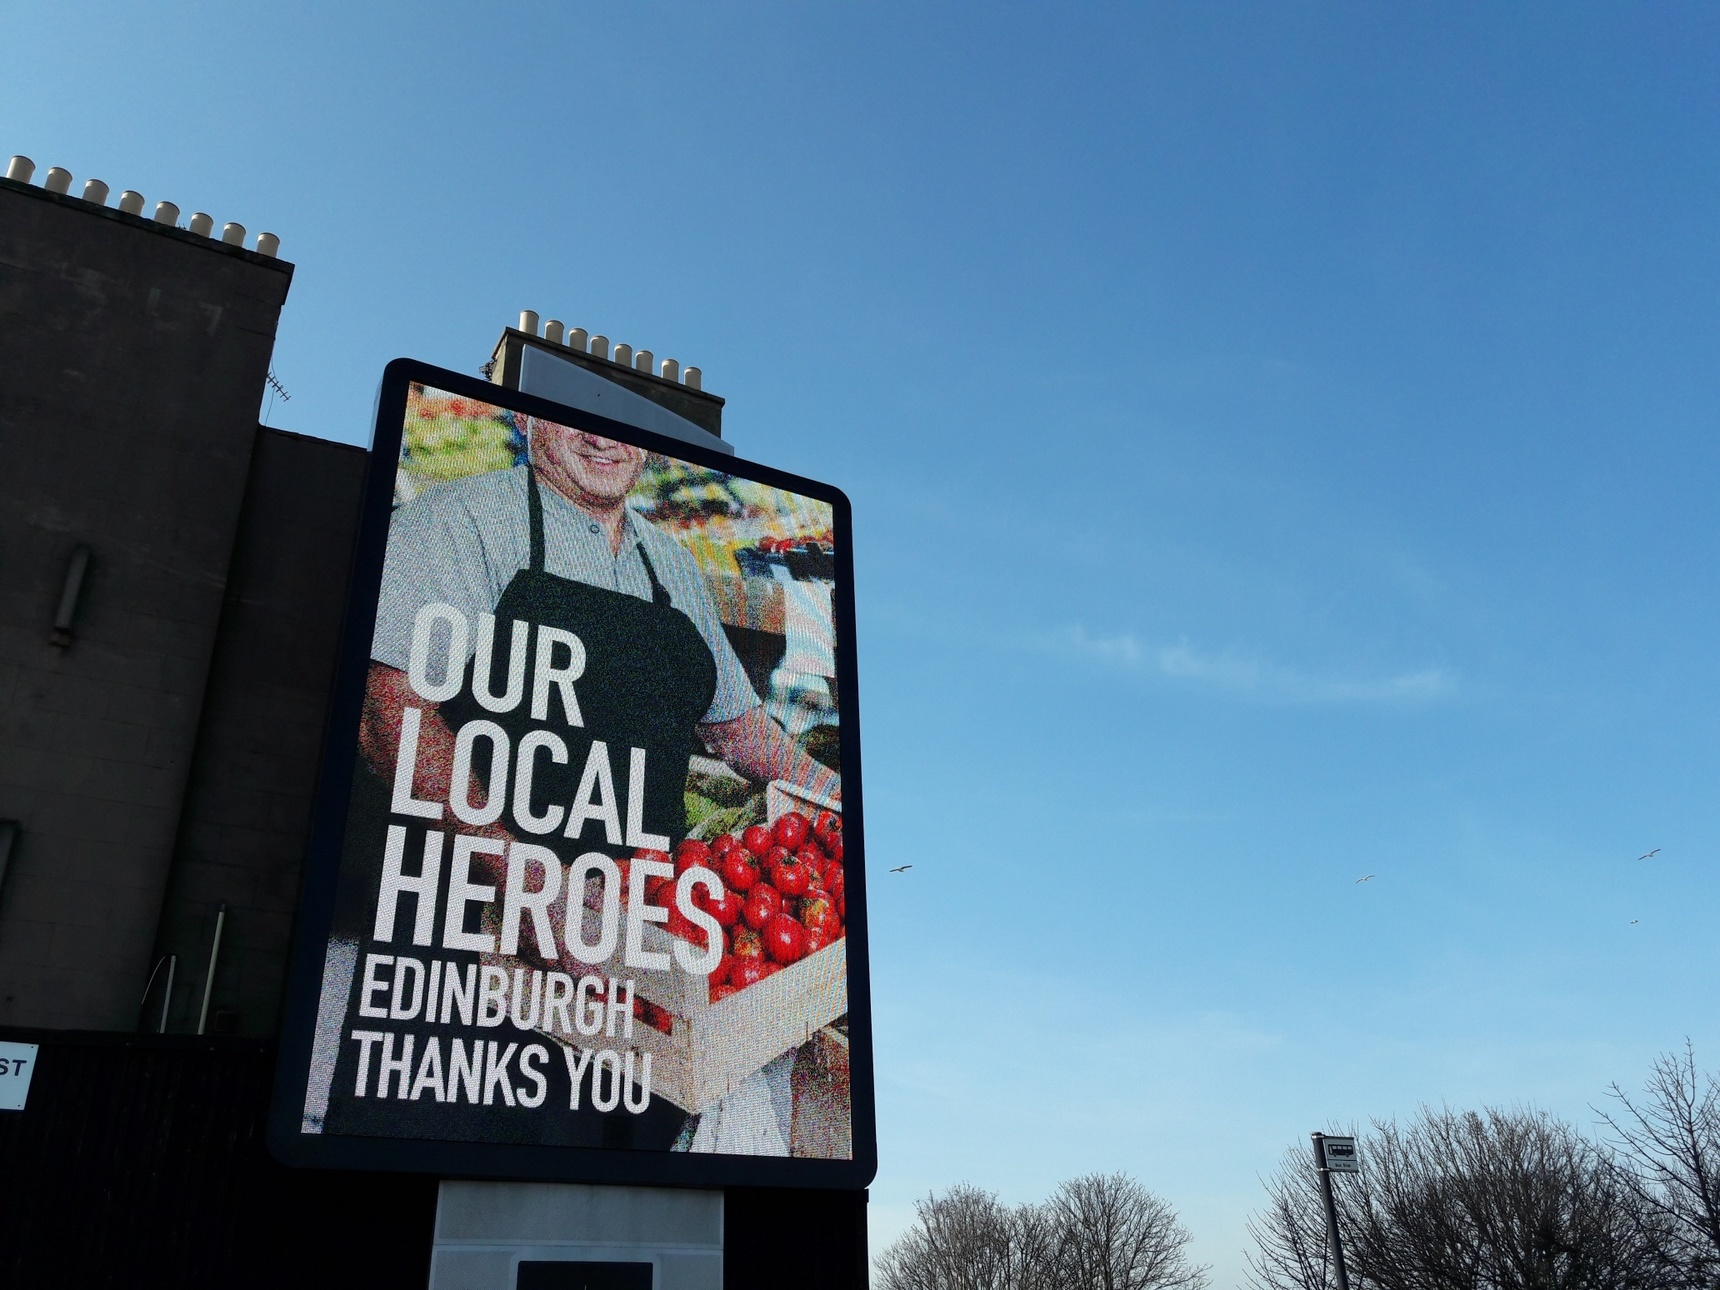 Our local heroes - food producers and shop workers